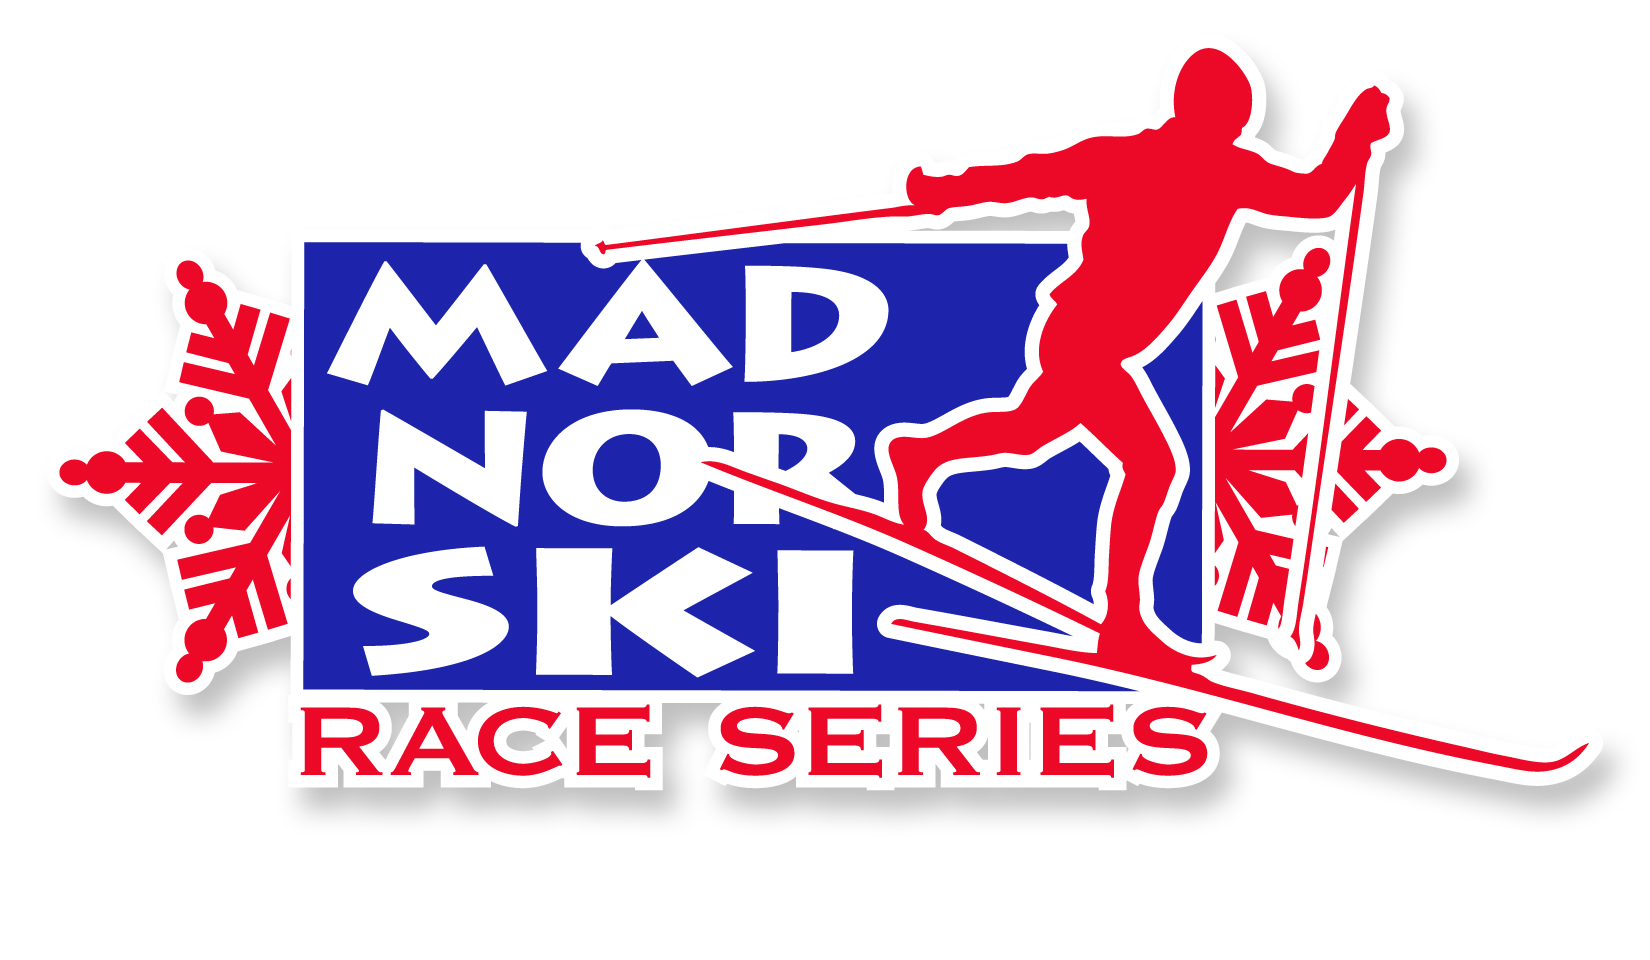 MadNorSki Race Series